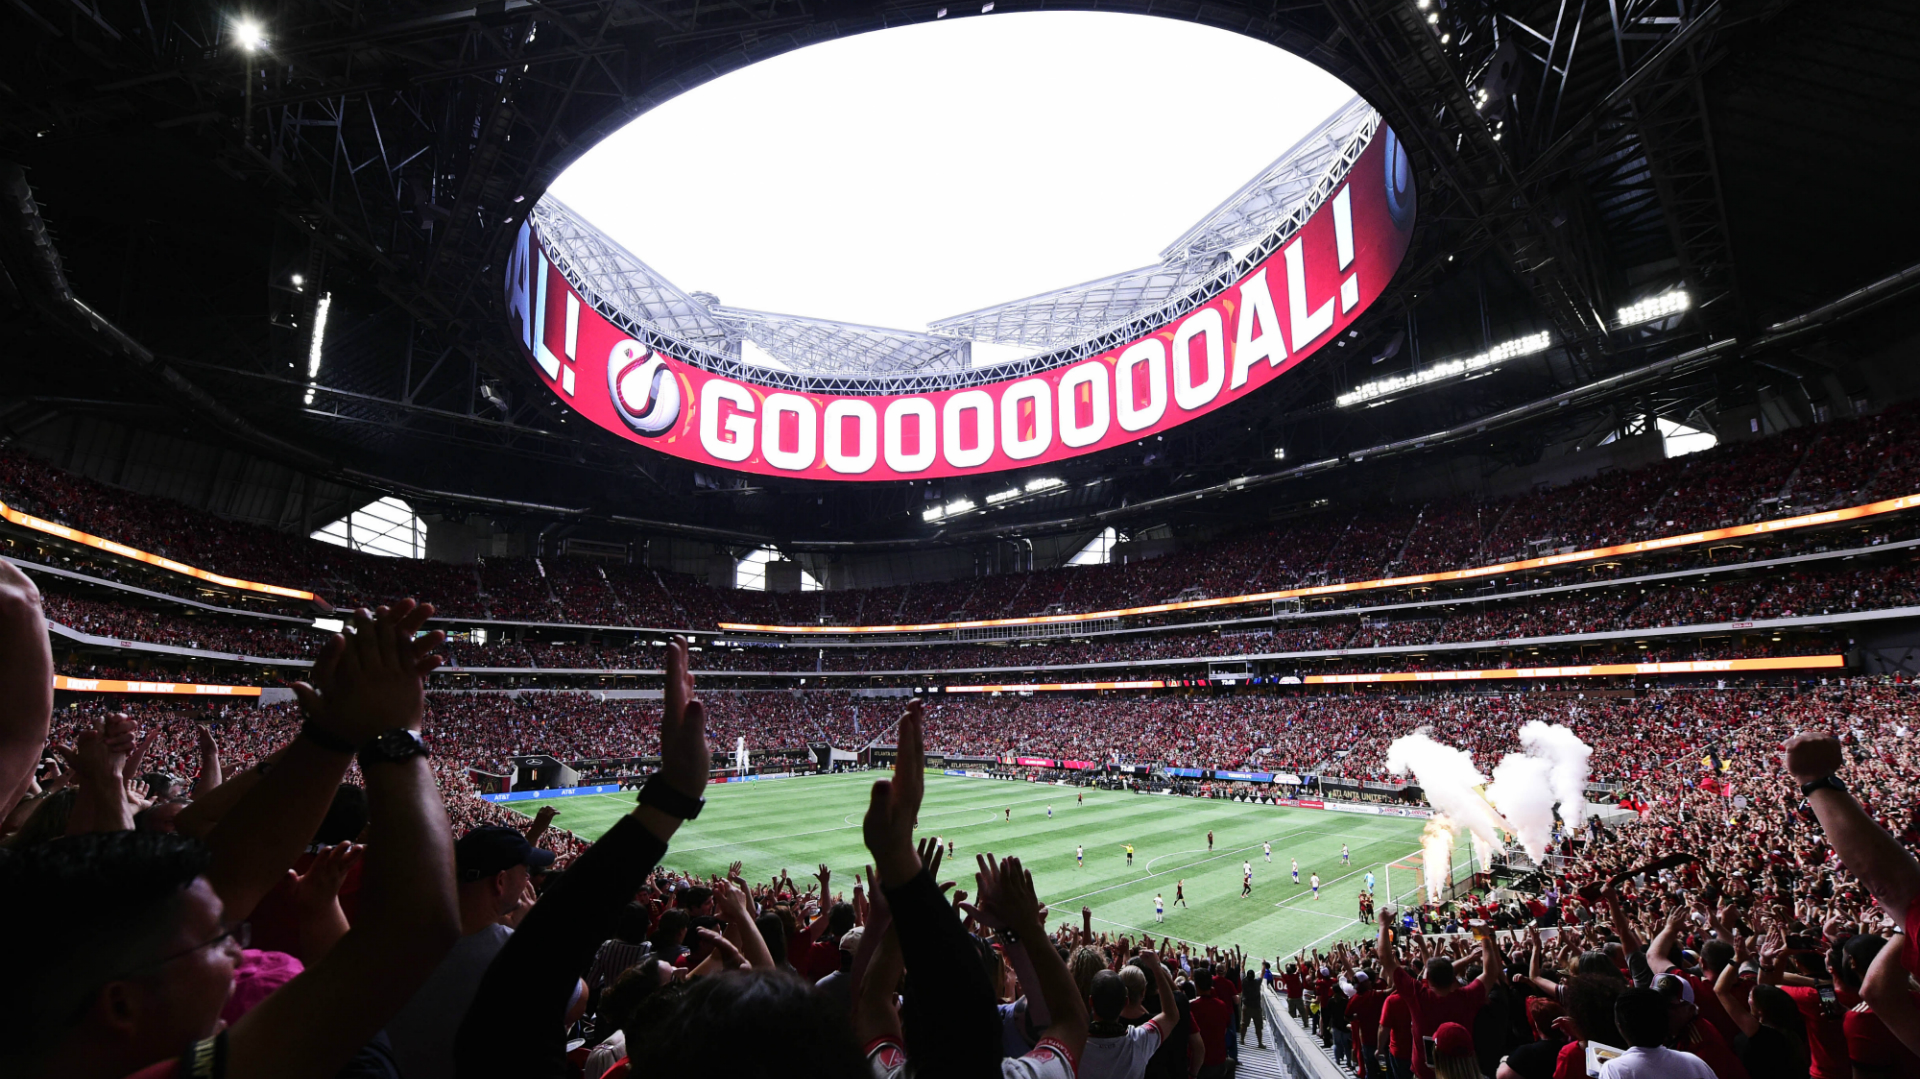 Mls announces atlanta as 2018 all star game host 15 for Mercedes benz stadium atlanta united